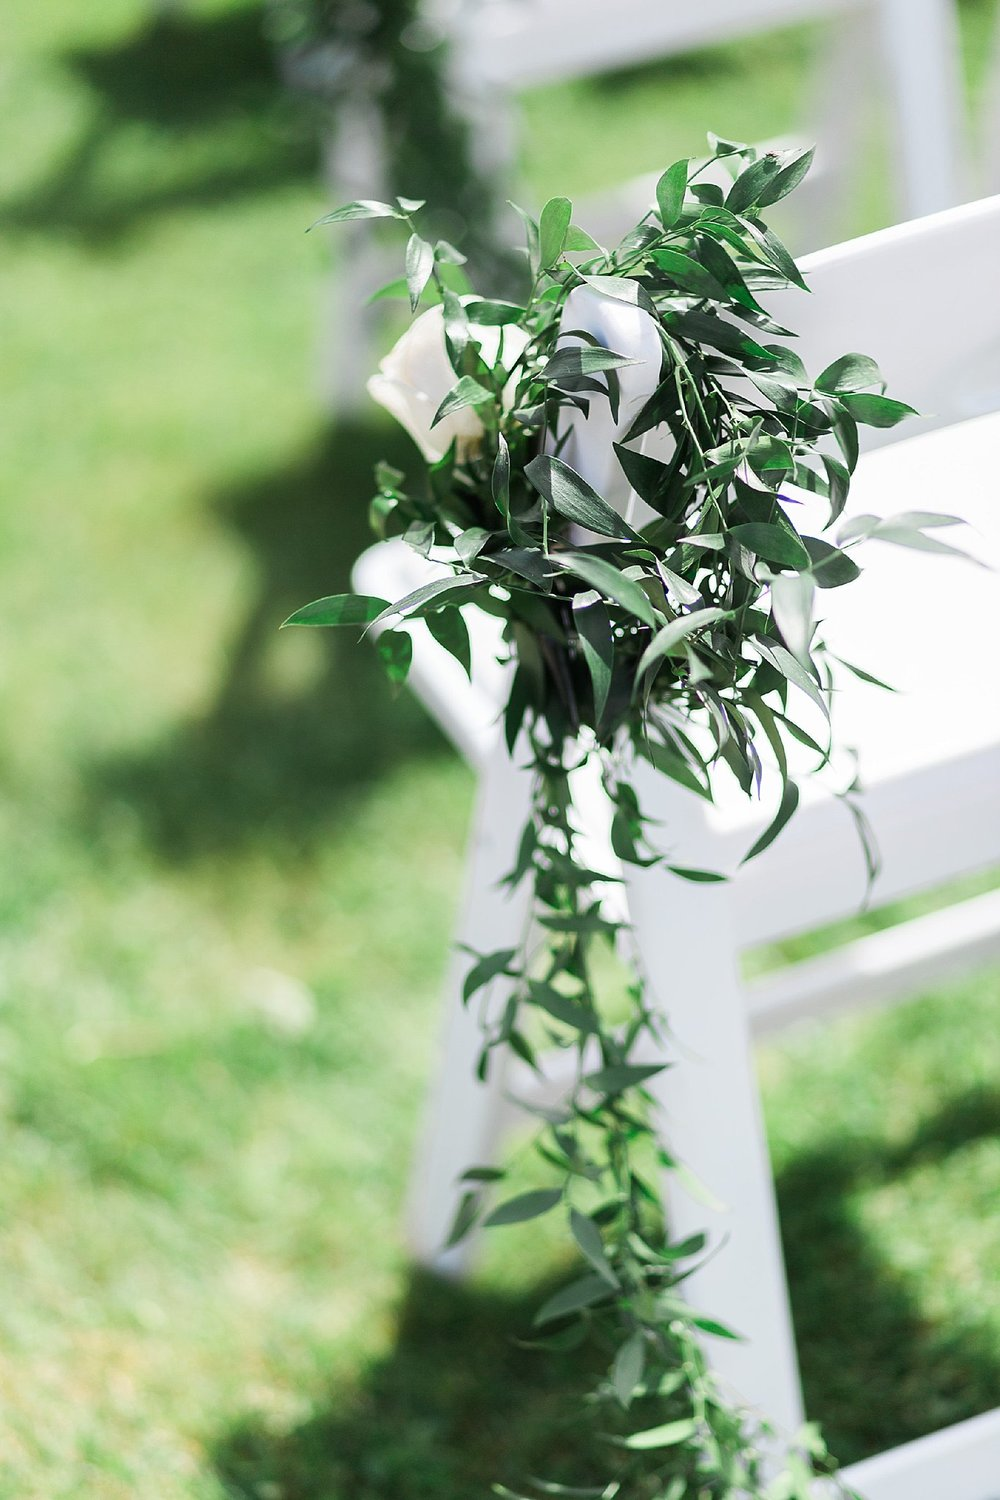 RCMP Wedding - Winnipeg Wedding Photographer - Outdoor ceremony details - Keila Marie Photography